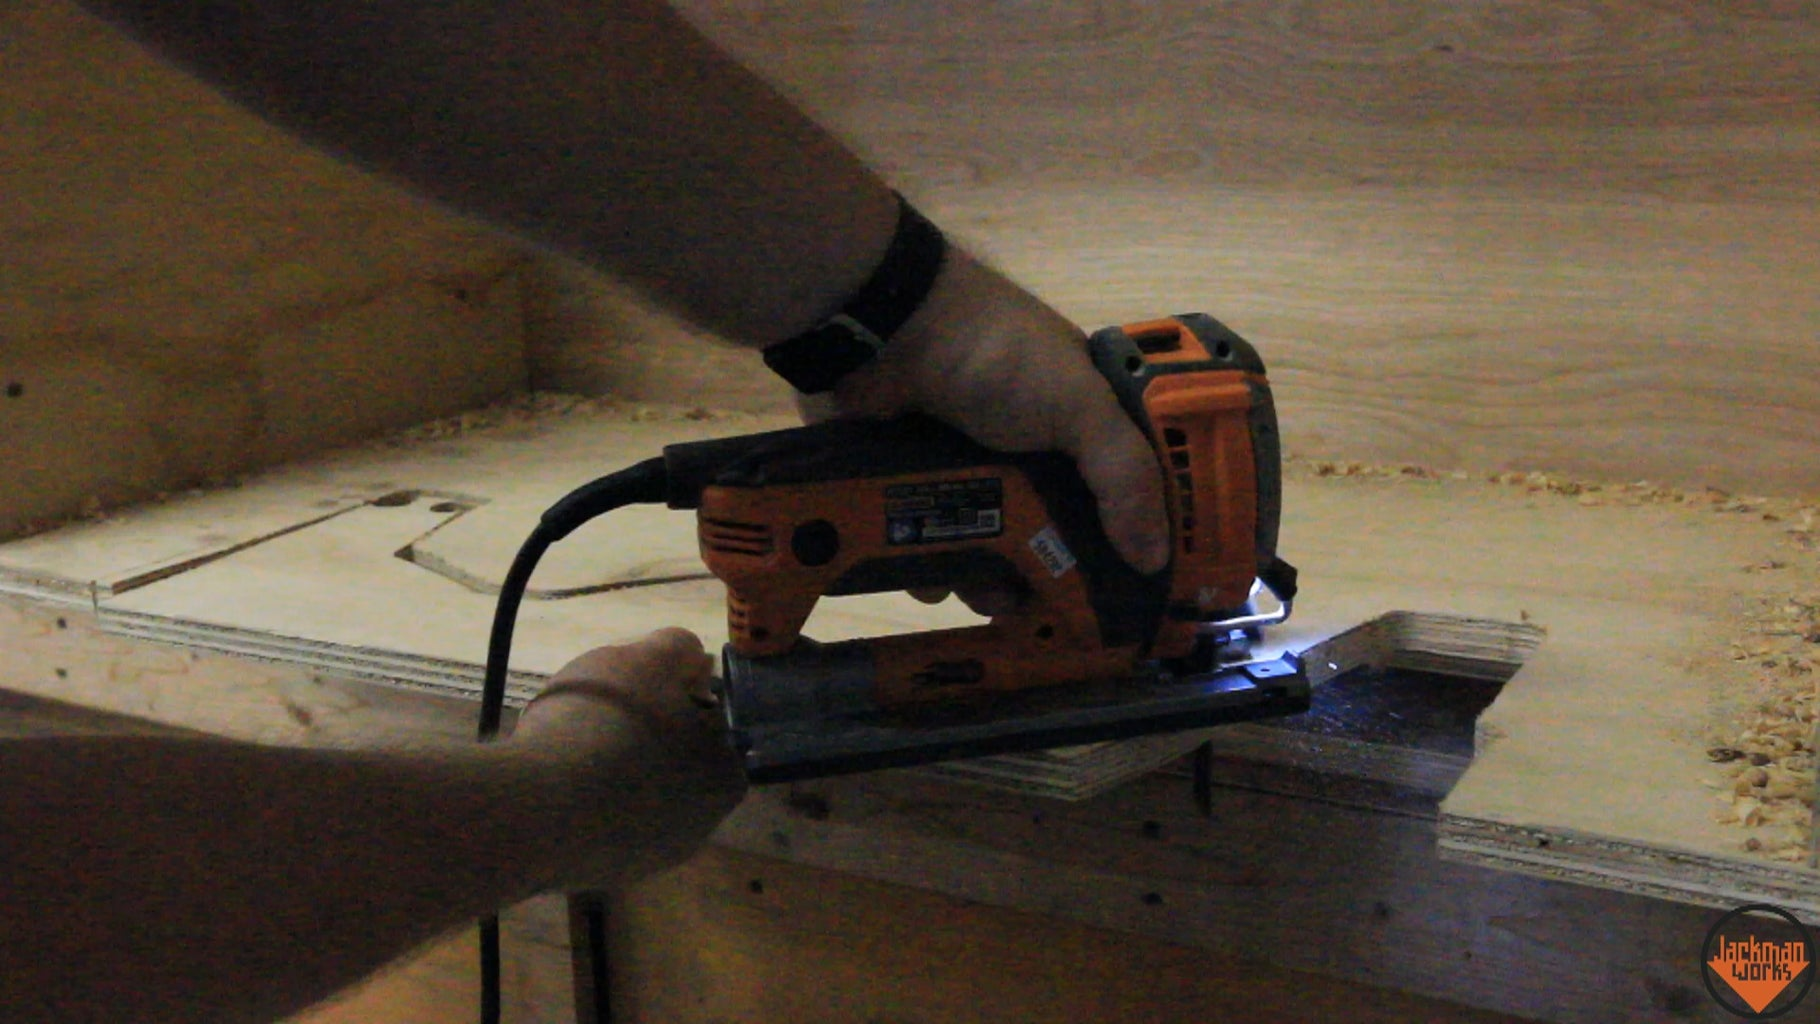 Fitting the Miter Saw